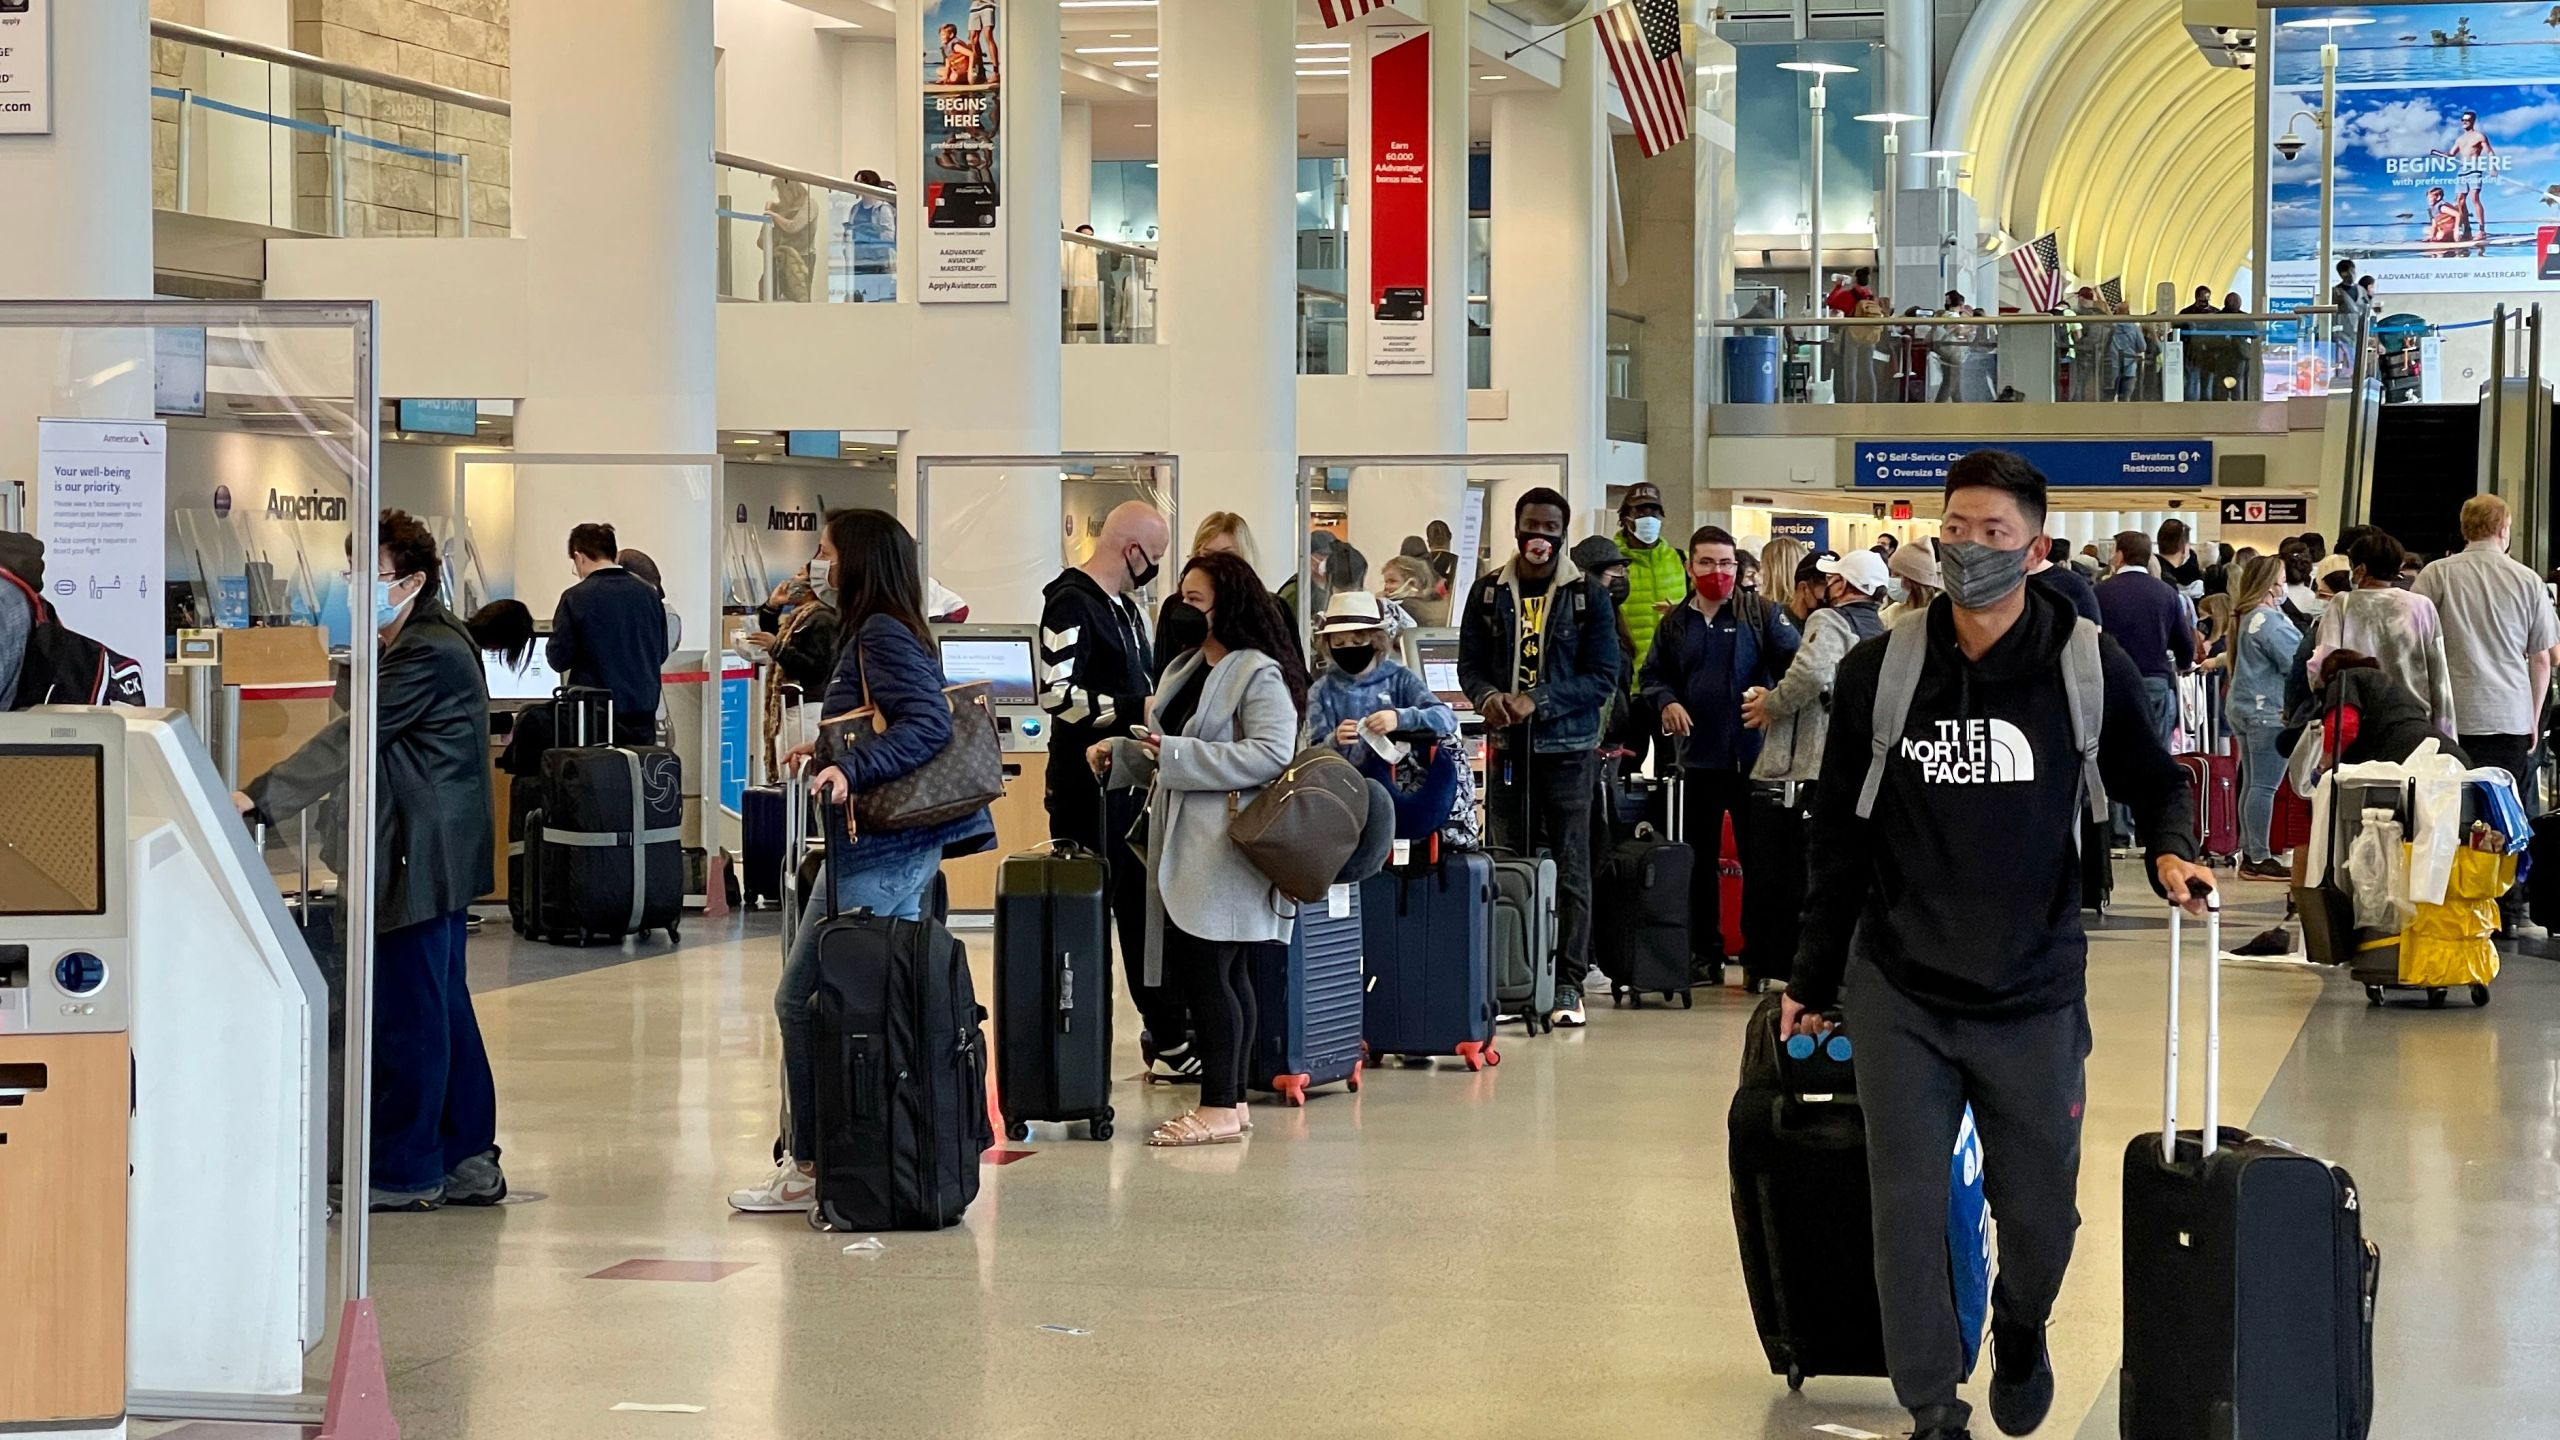 Passengers wait in line at the American Airlines checkin counters at the Los Angeles International Airport (LAX) on April 24, 2021. (DANIEL SLIM/AFP via Getty Images)